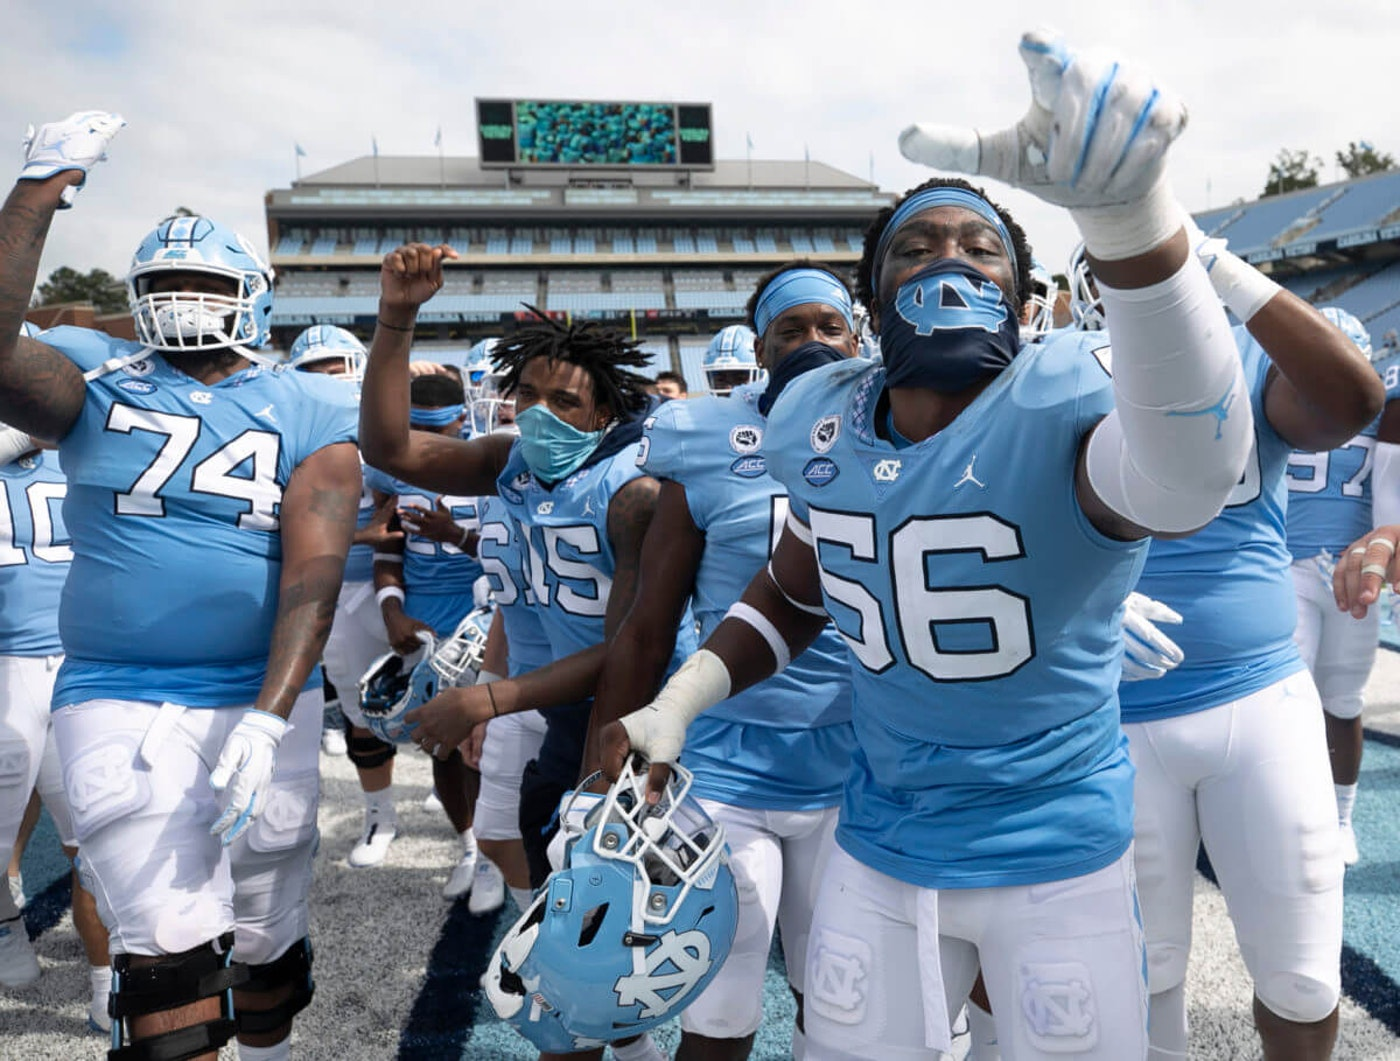 UNC-Chapel Hill football player Tomari Fox (56) and his teammates celebrate their victory over Syracuse on Saturday, Sept. 12, 2020, in Chapel Hill, N.C.(Robert Willett/The News & Observer via AP, Pool)